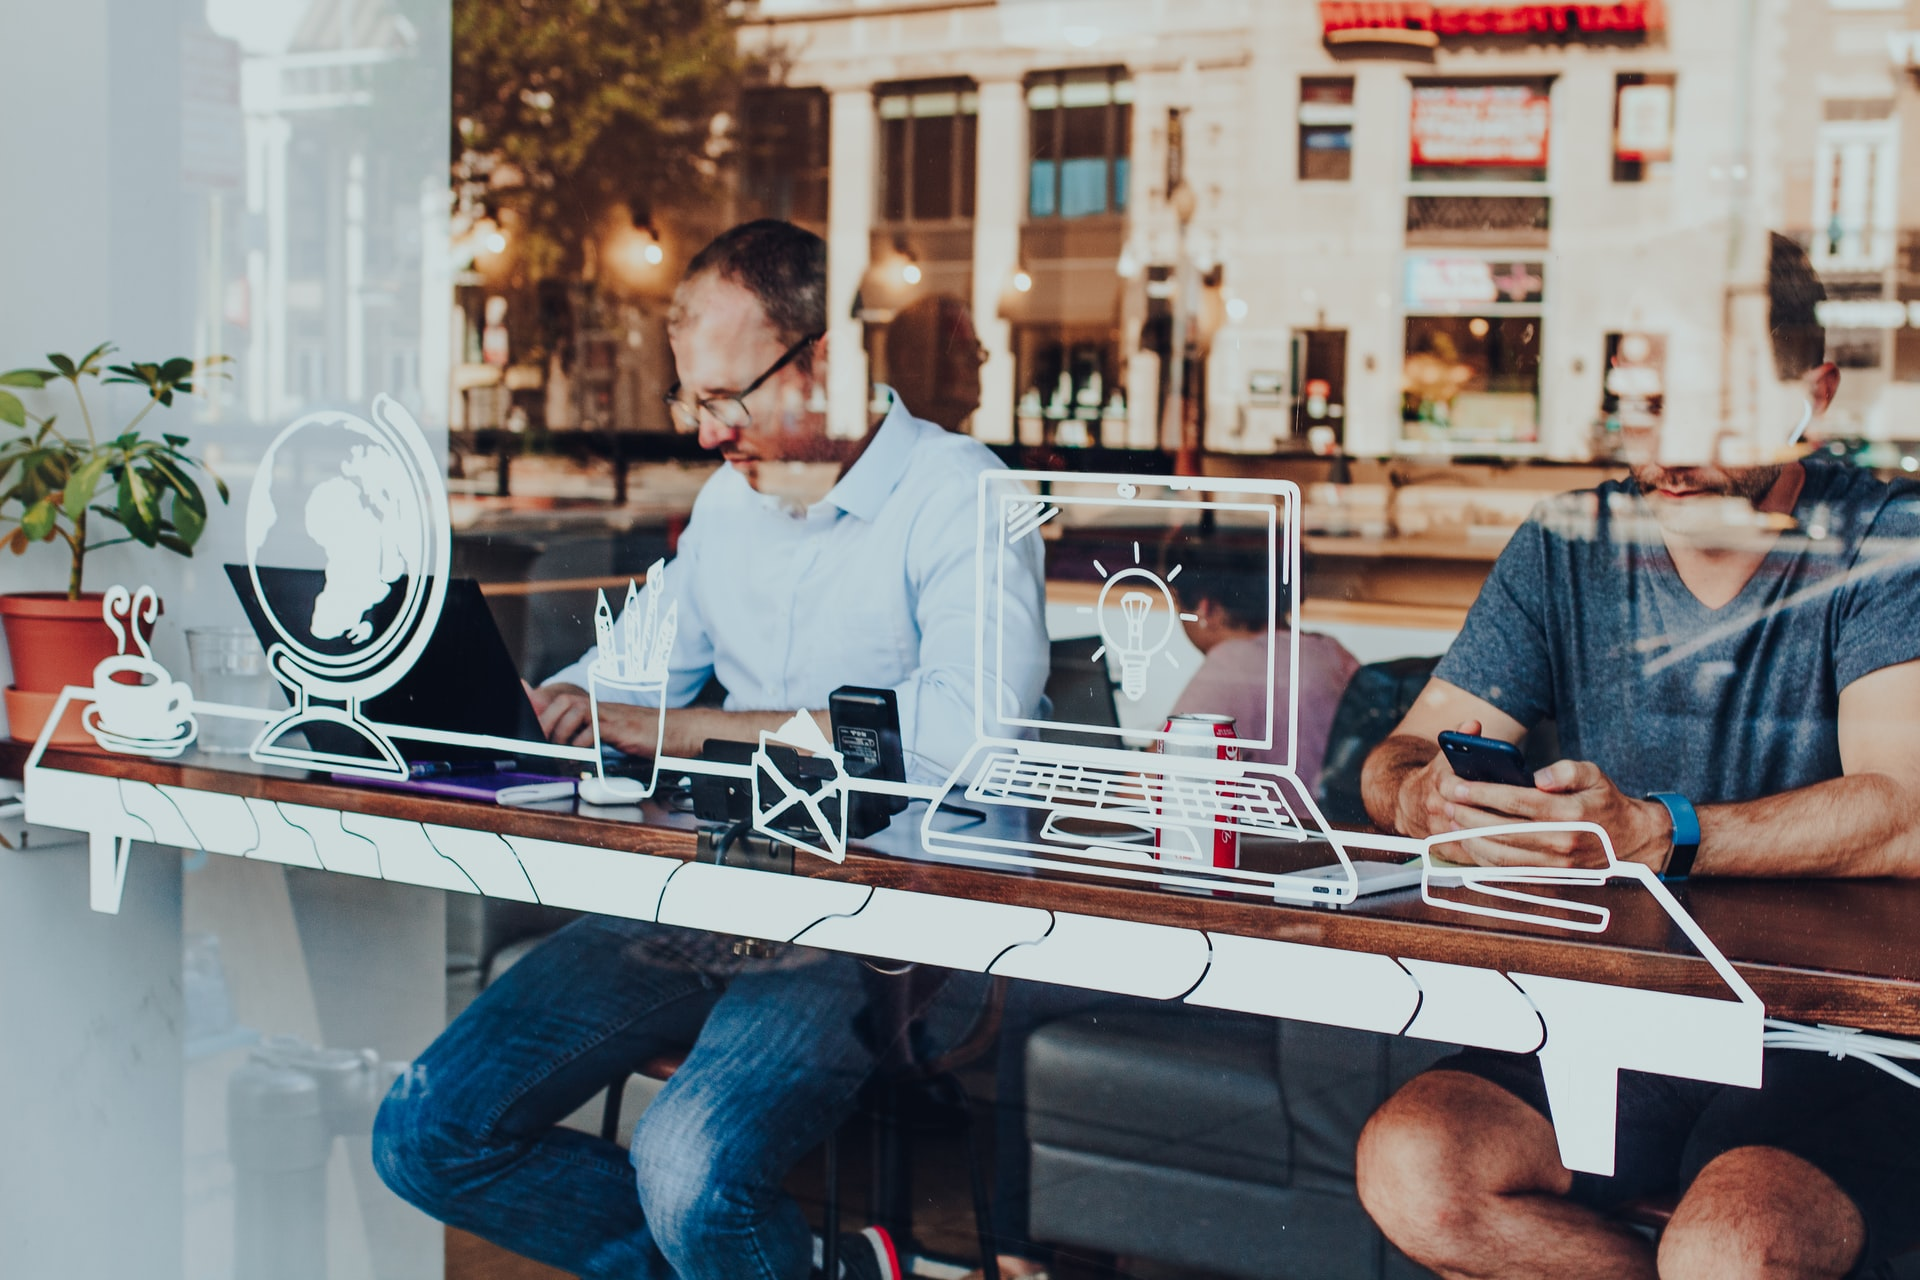 People sitting in a window using computers and smartphones